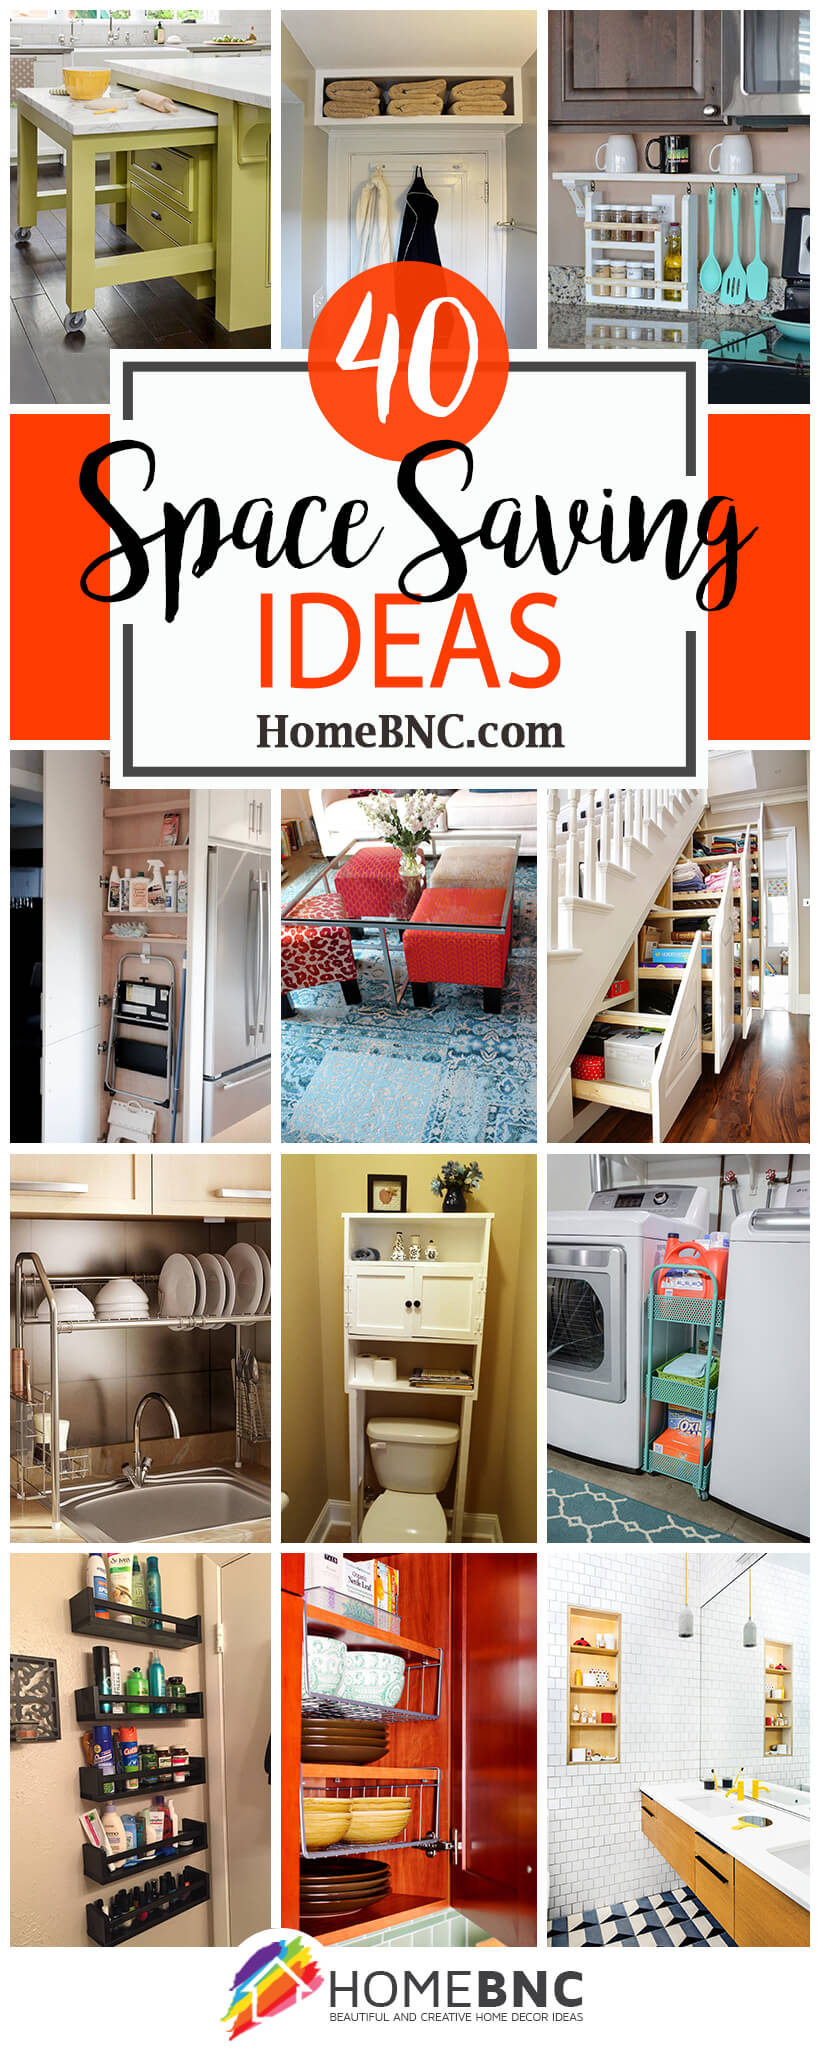 40 Best Space Saving Ideas And Projects For 2021